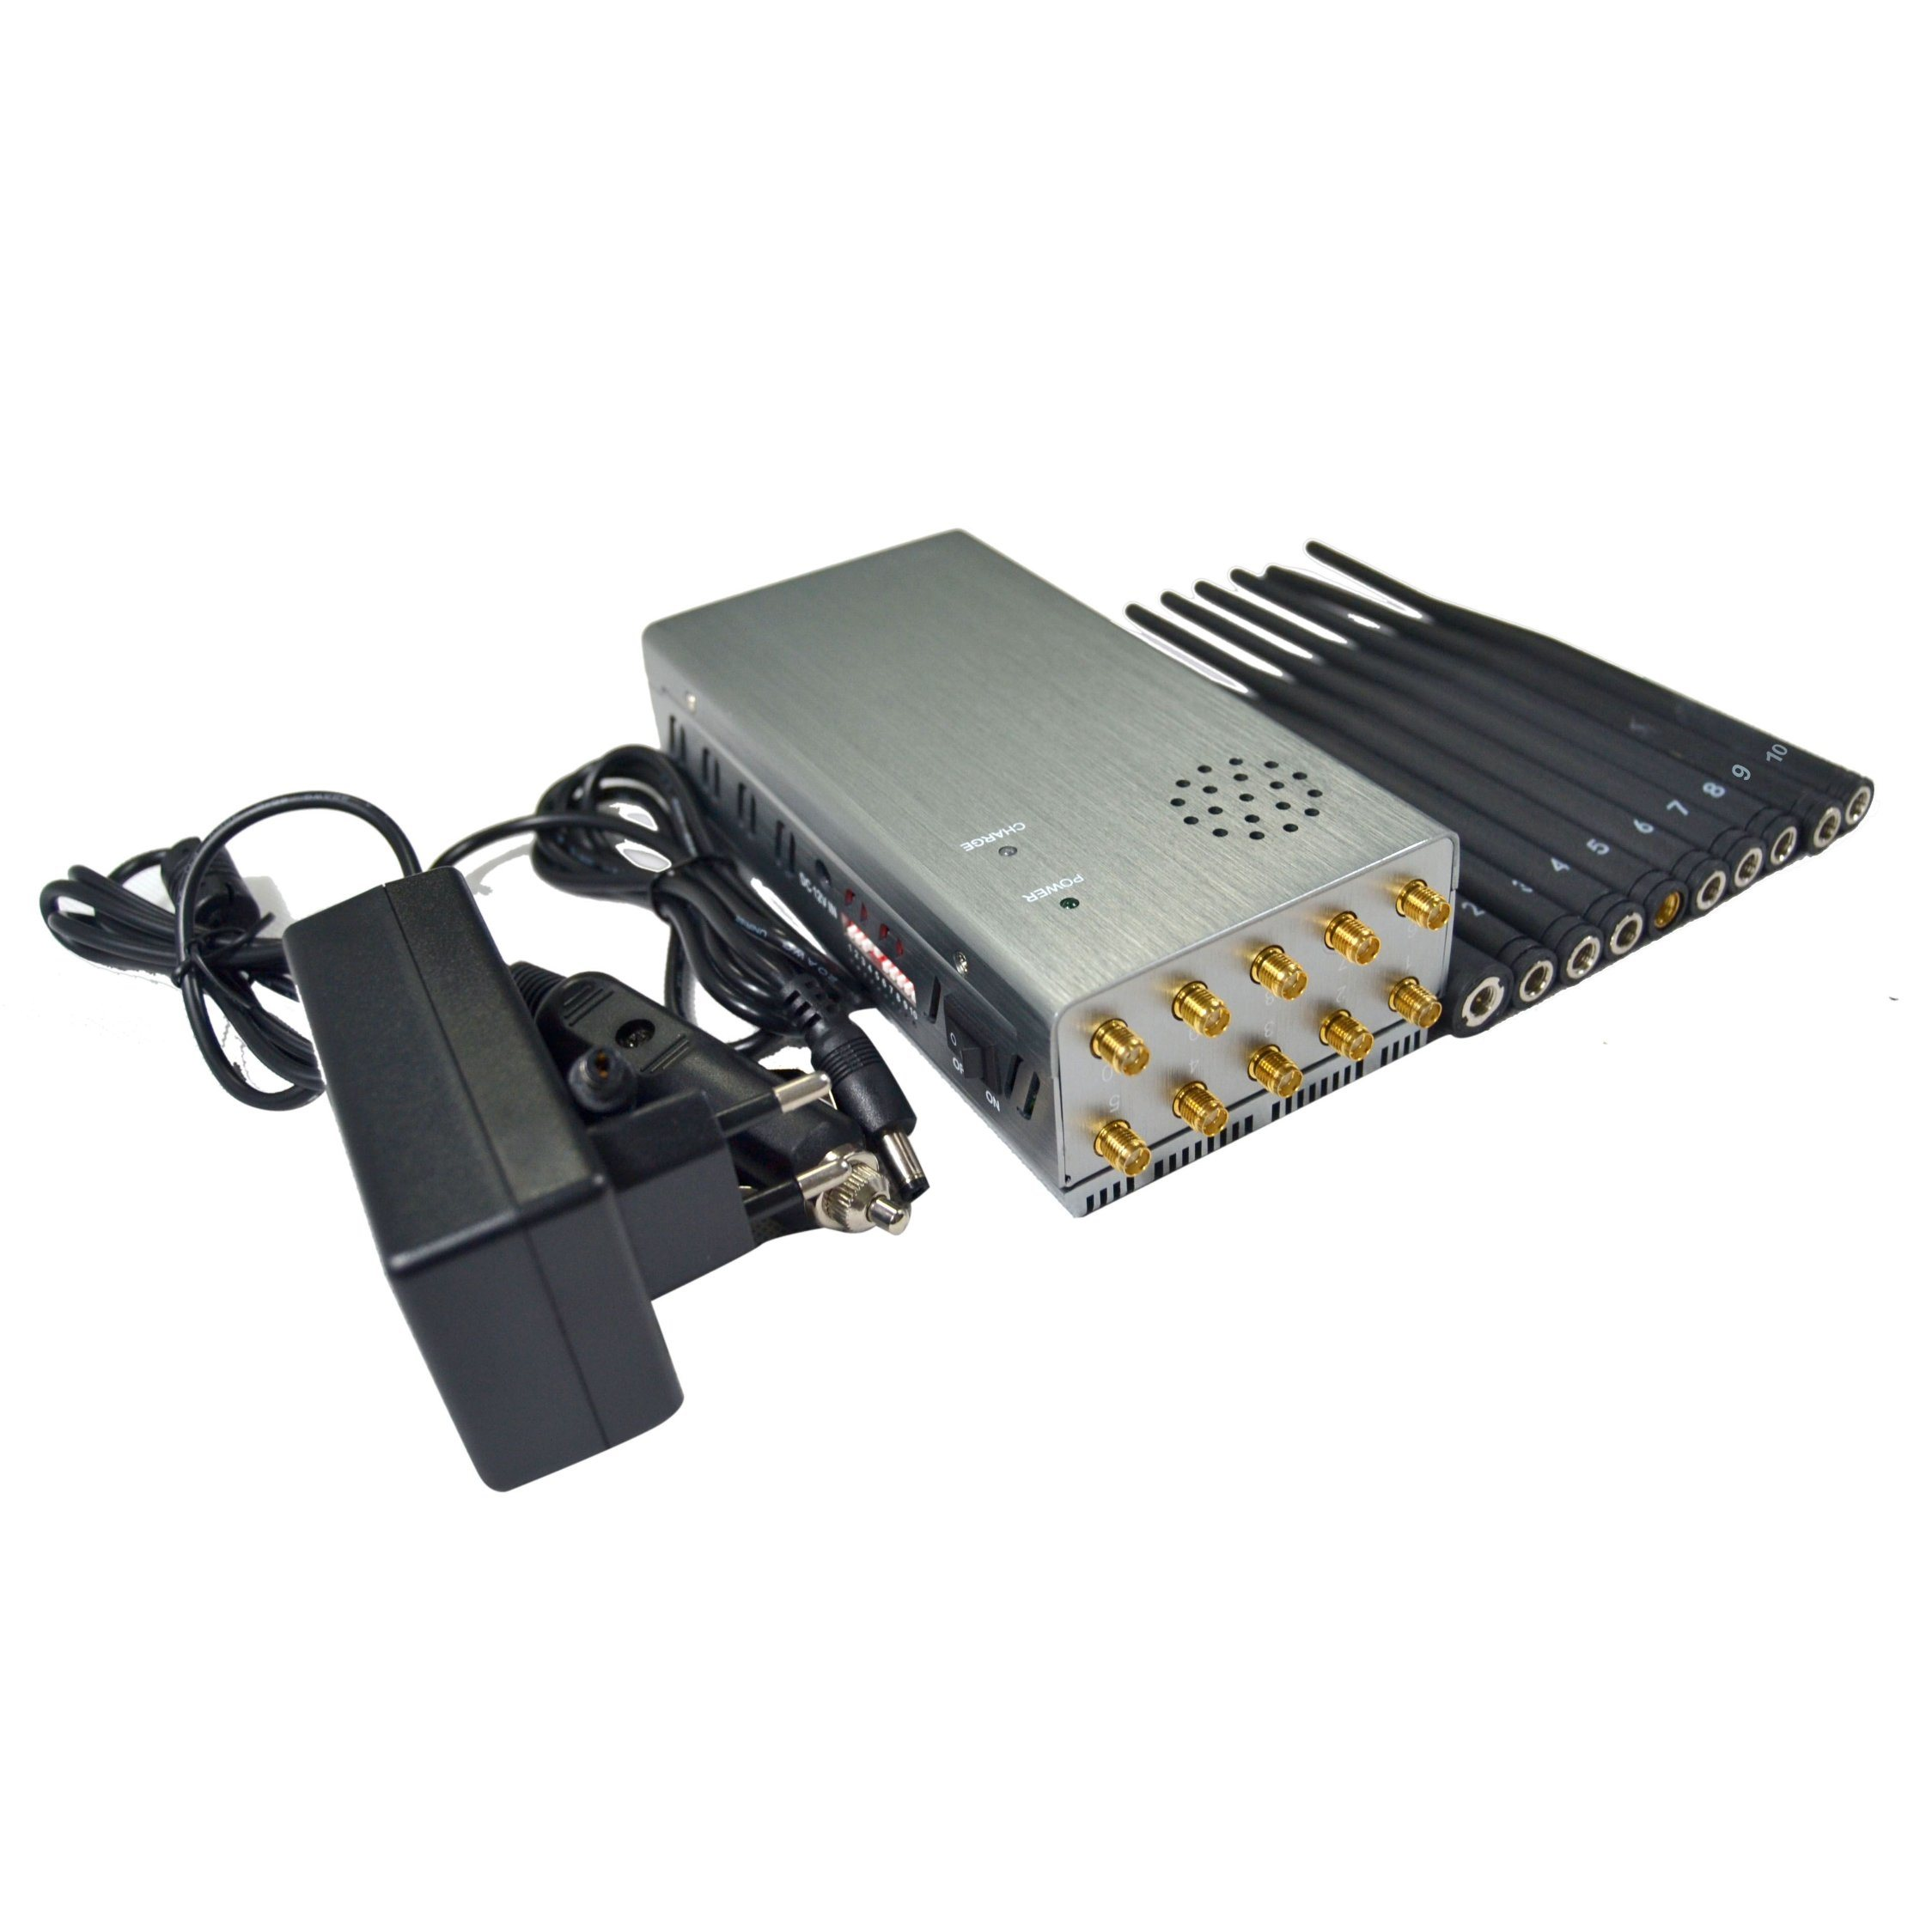 signal jammer Cooper City , China Lojack 2g 3G 4G 5g GPS 433MHz315MHz868MHz Full Band up to 10 Antennas Signal Blocker - China 8000mA Battery Jammer, Large Volume Power Signal Blocker